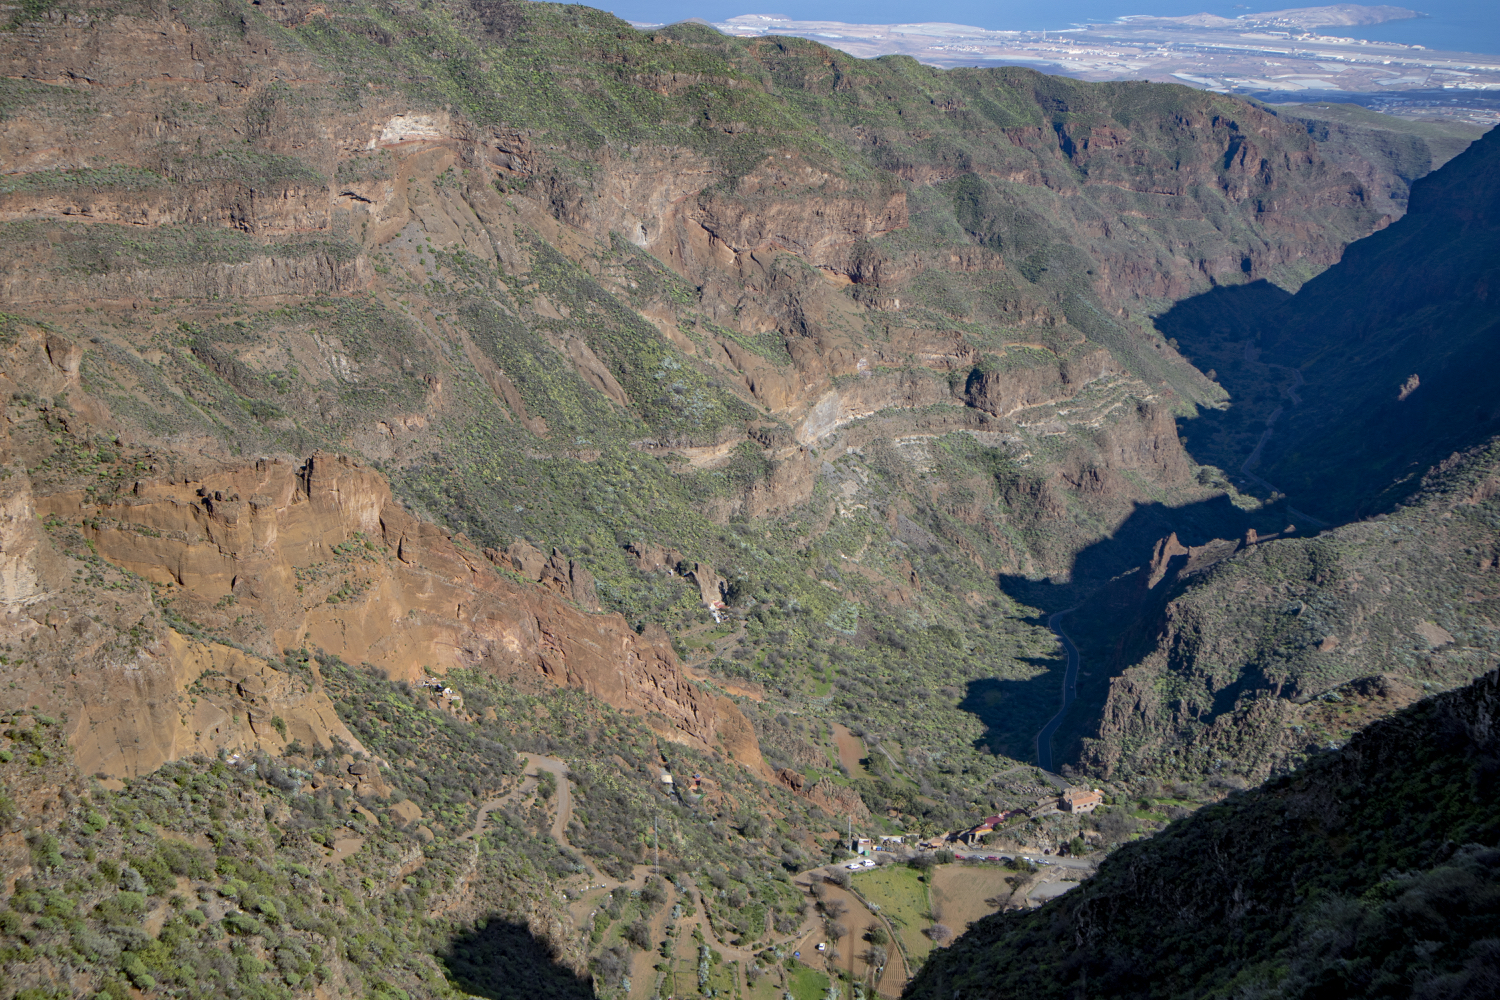 View from the height into the Barranco up to the coast